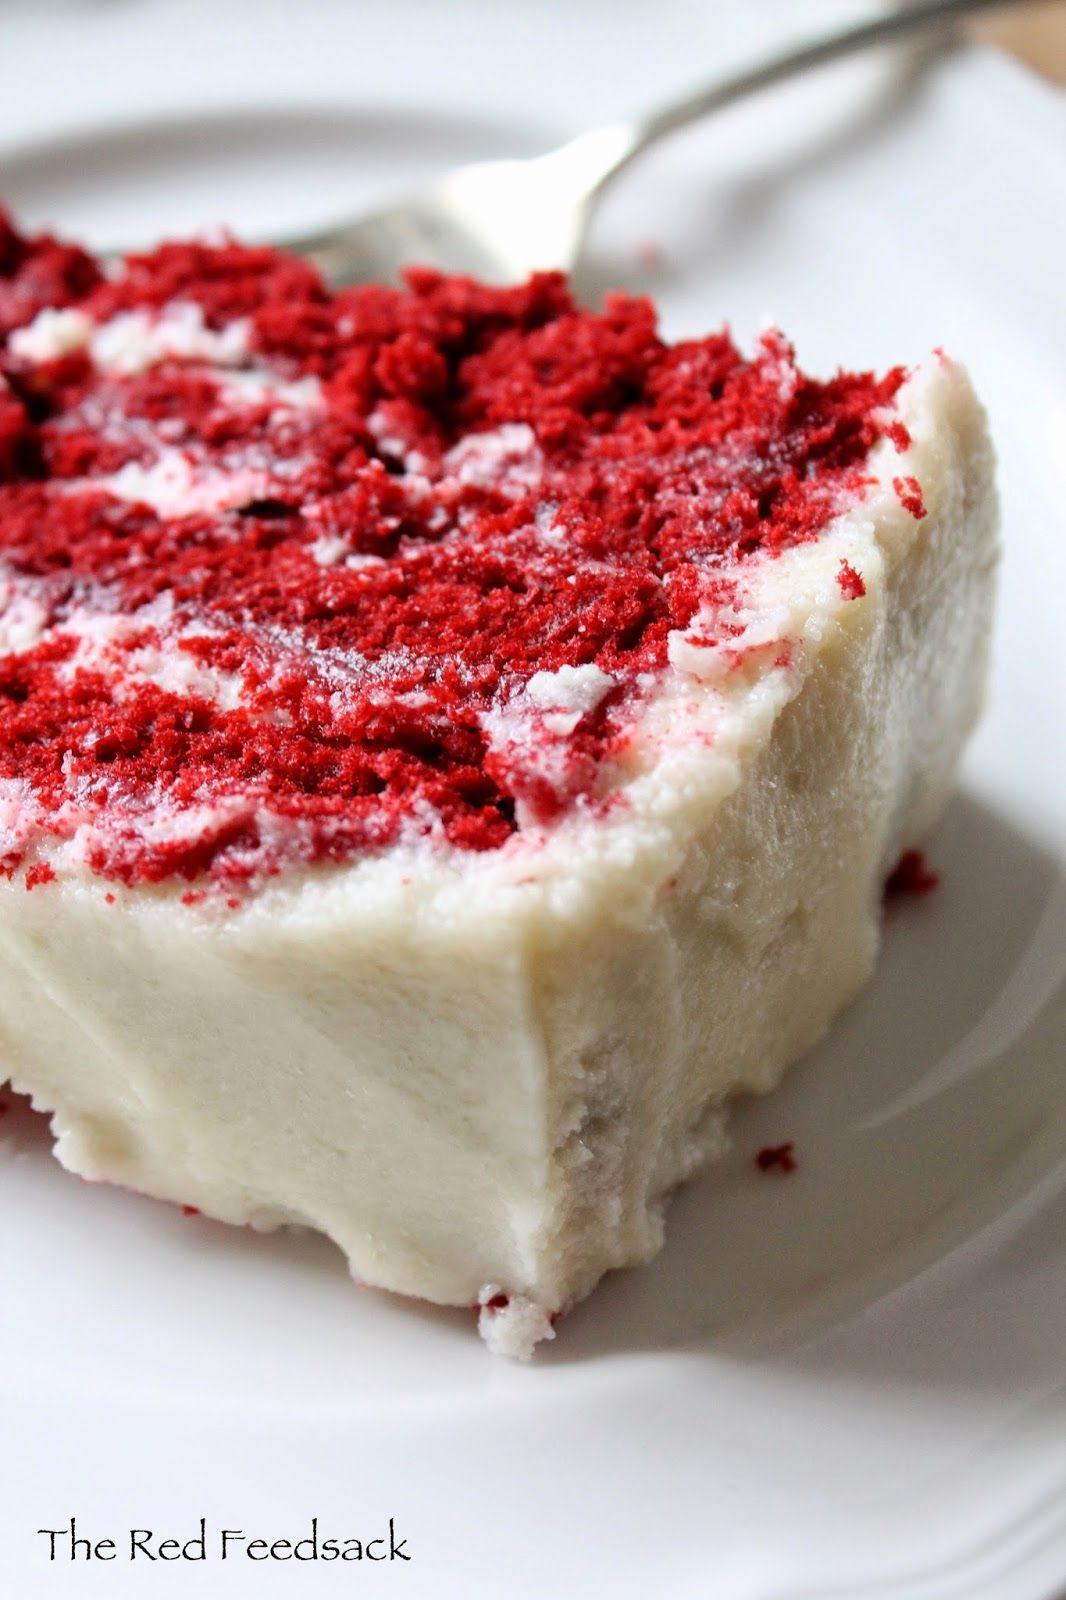 60 year old Red Velvet Cake recipe The frosting recipe is the one